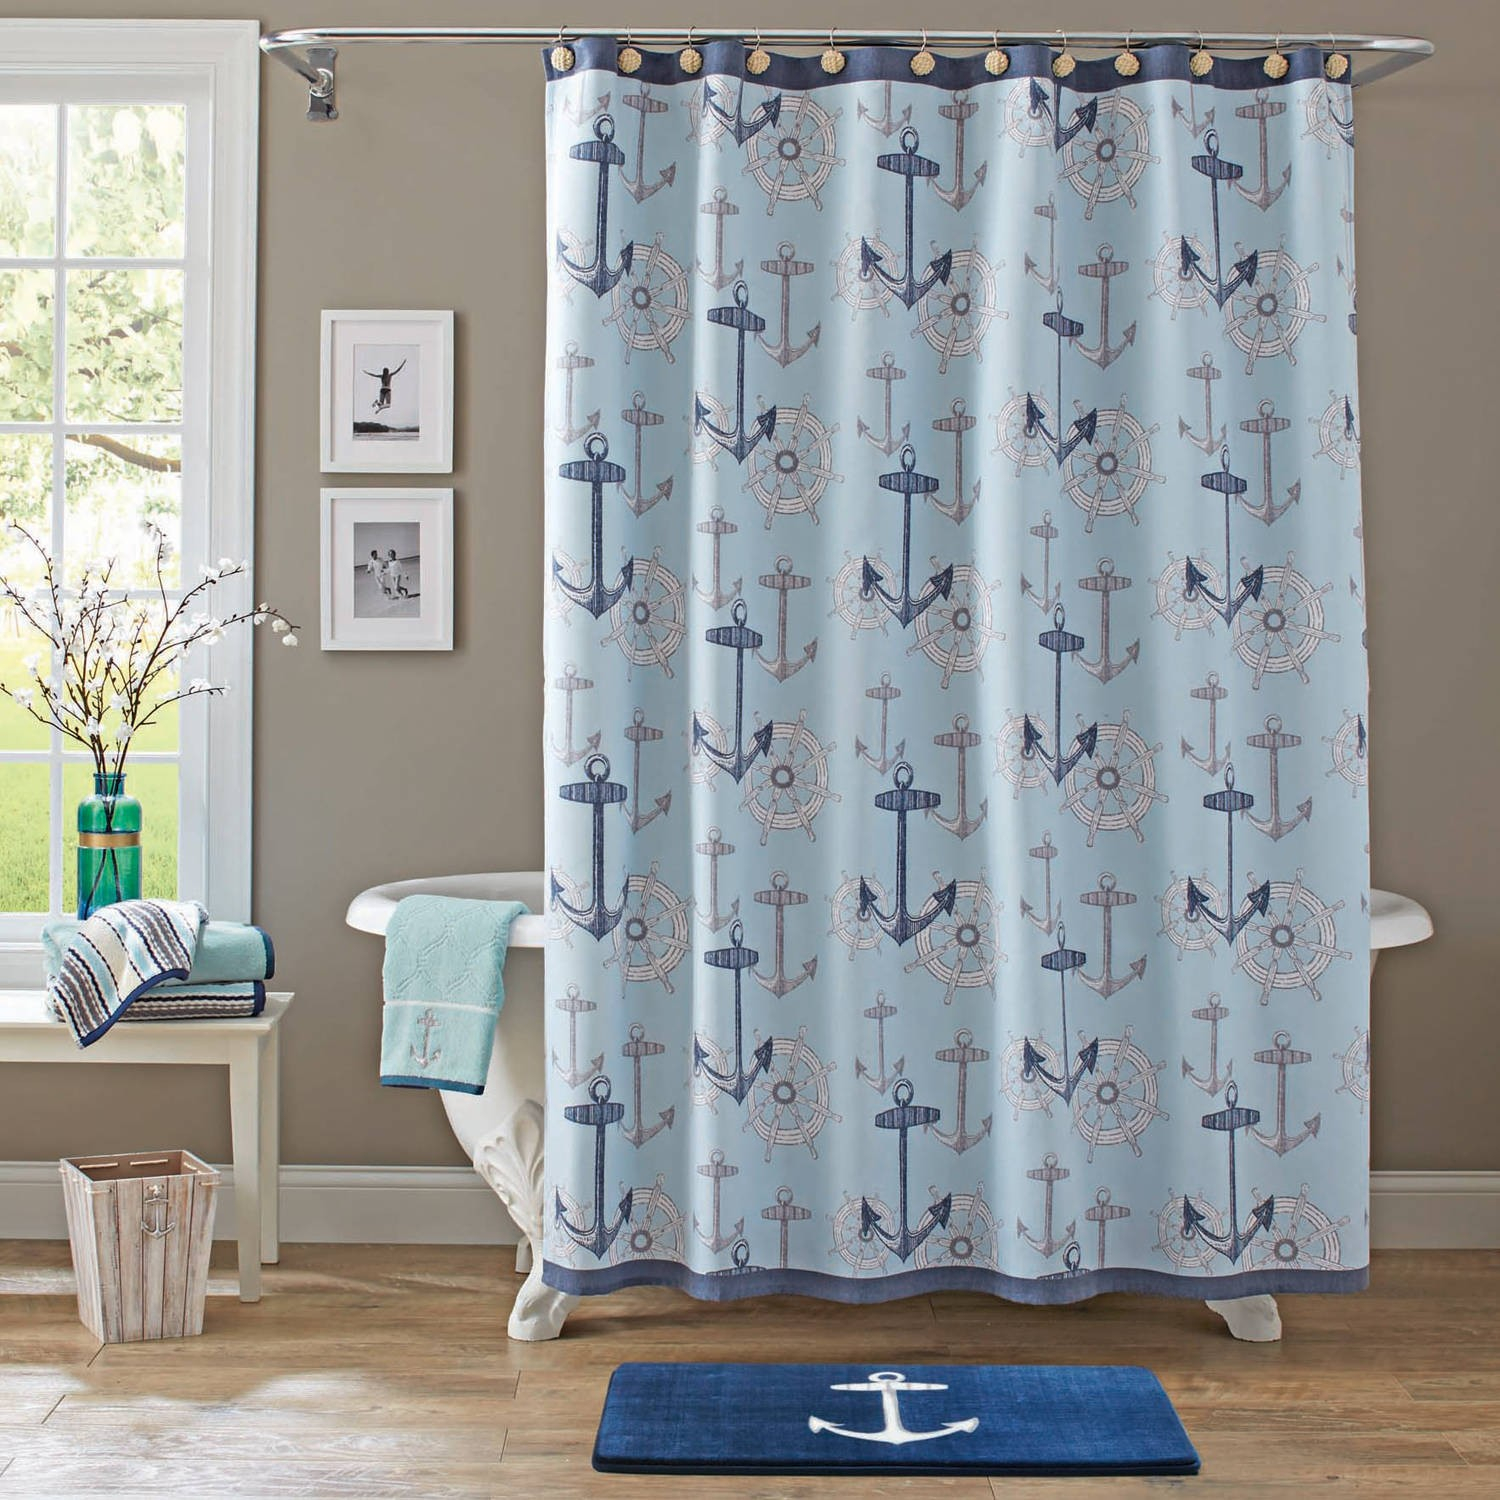 Shower Curtains With Towels • Shower Curtains Ideas